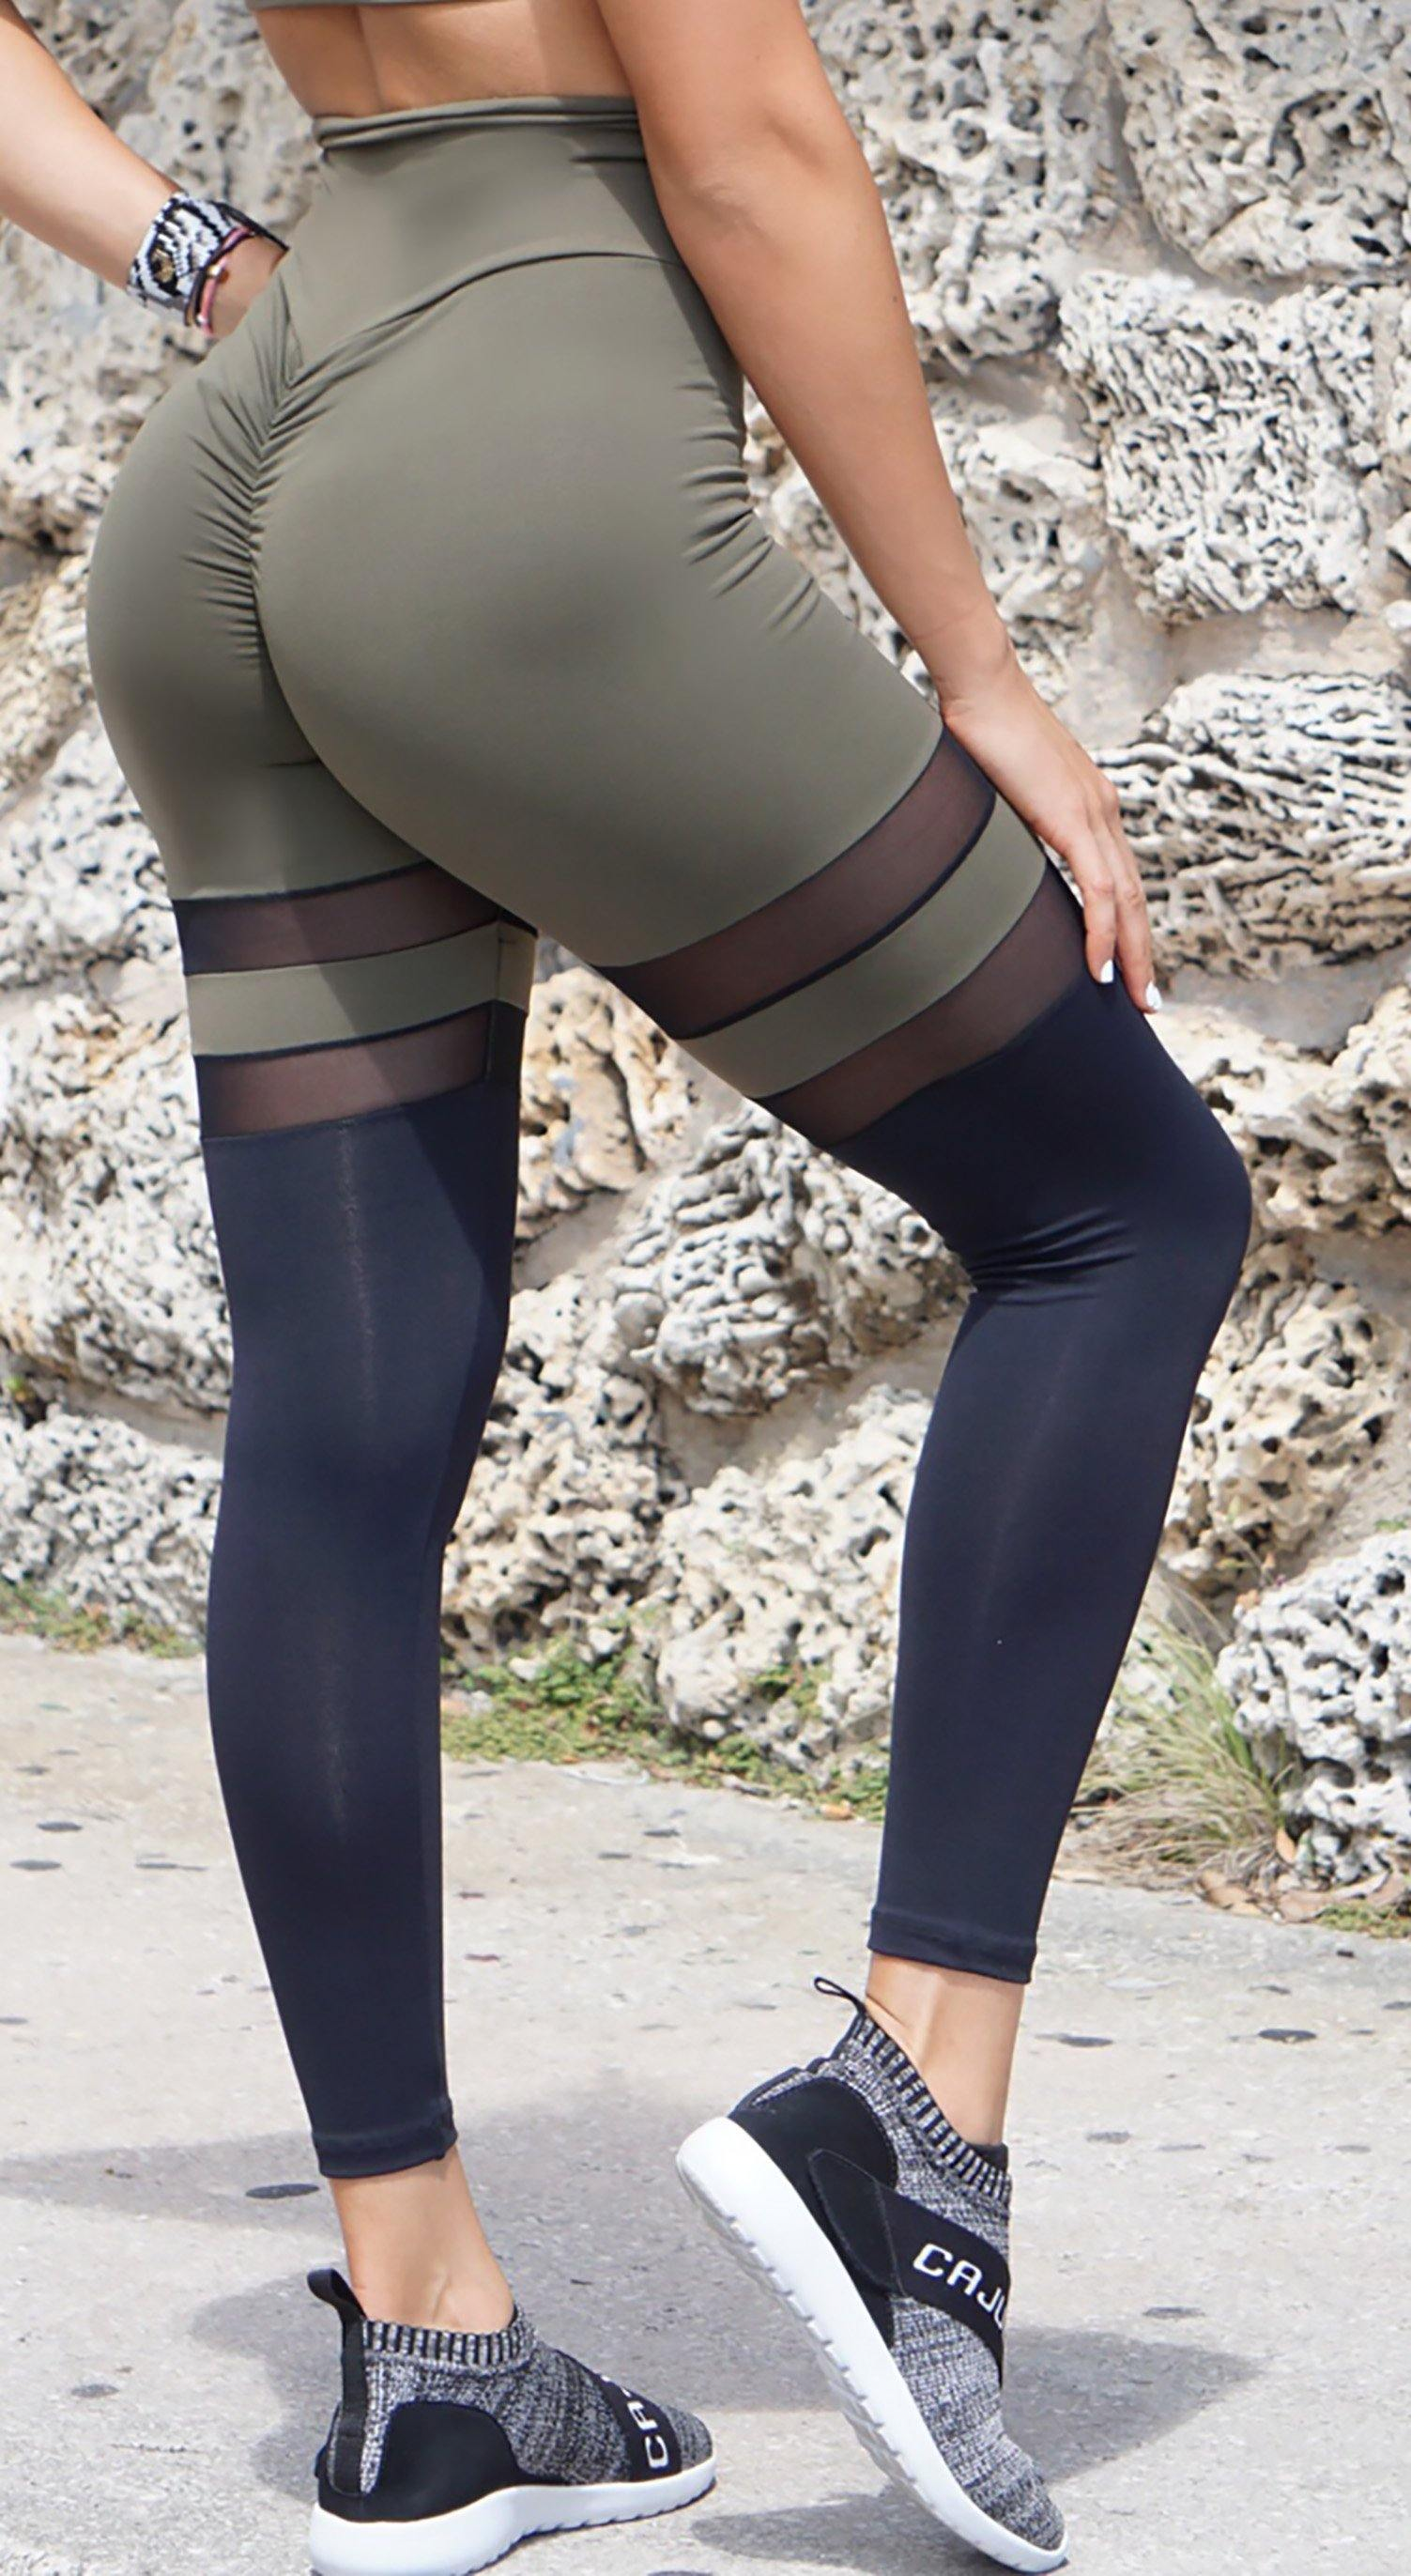 Brazilian Workout Legging - Scrunch Booty Socks Leggings Army Green & Black